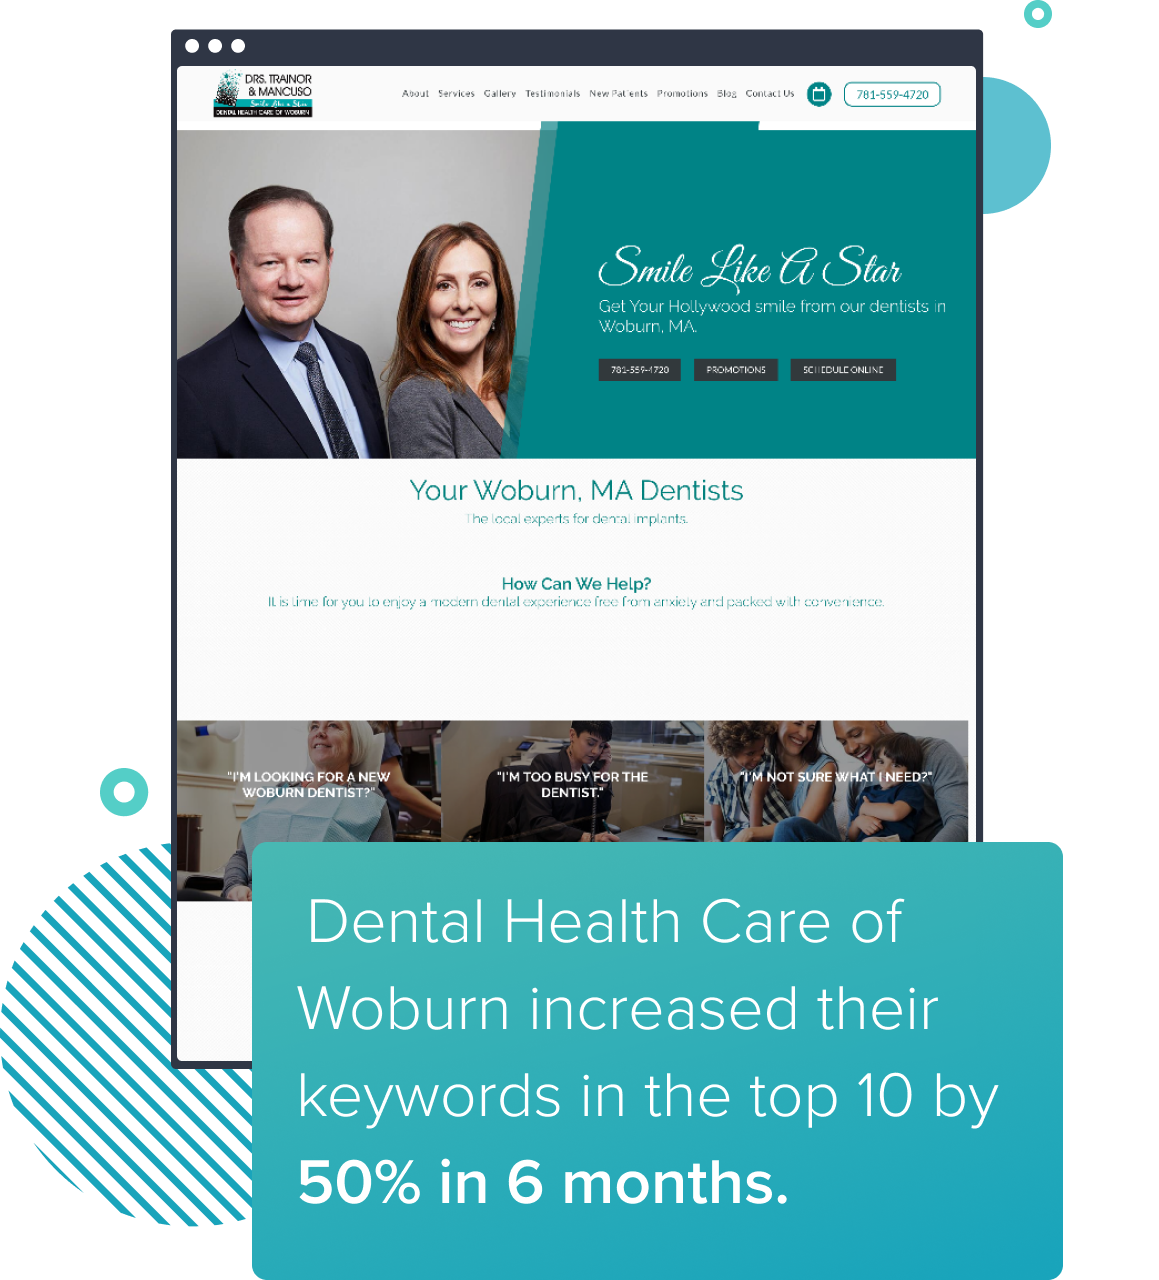 Preview of a website who increased their keywords in the top 10 by 50% in 6 months with dental SEO.